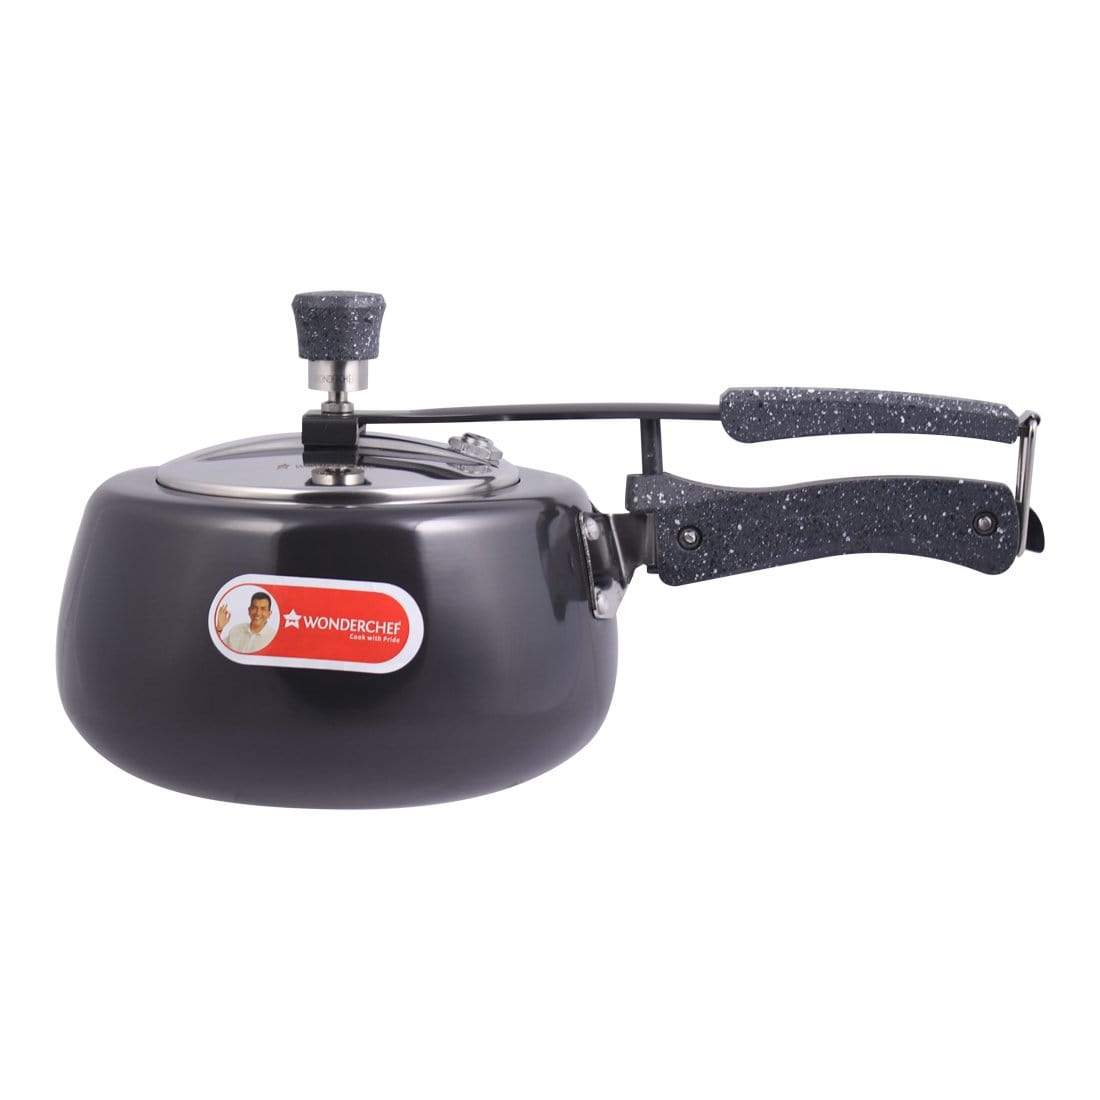 Wonderchef Taurus Hard Anodized Pressure Cooker  (3 Litre)